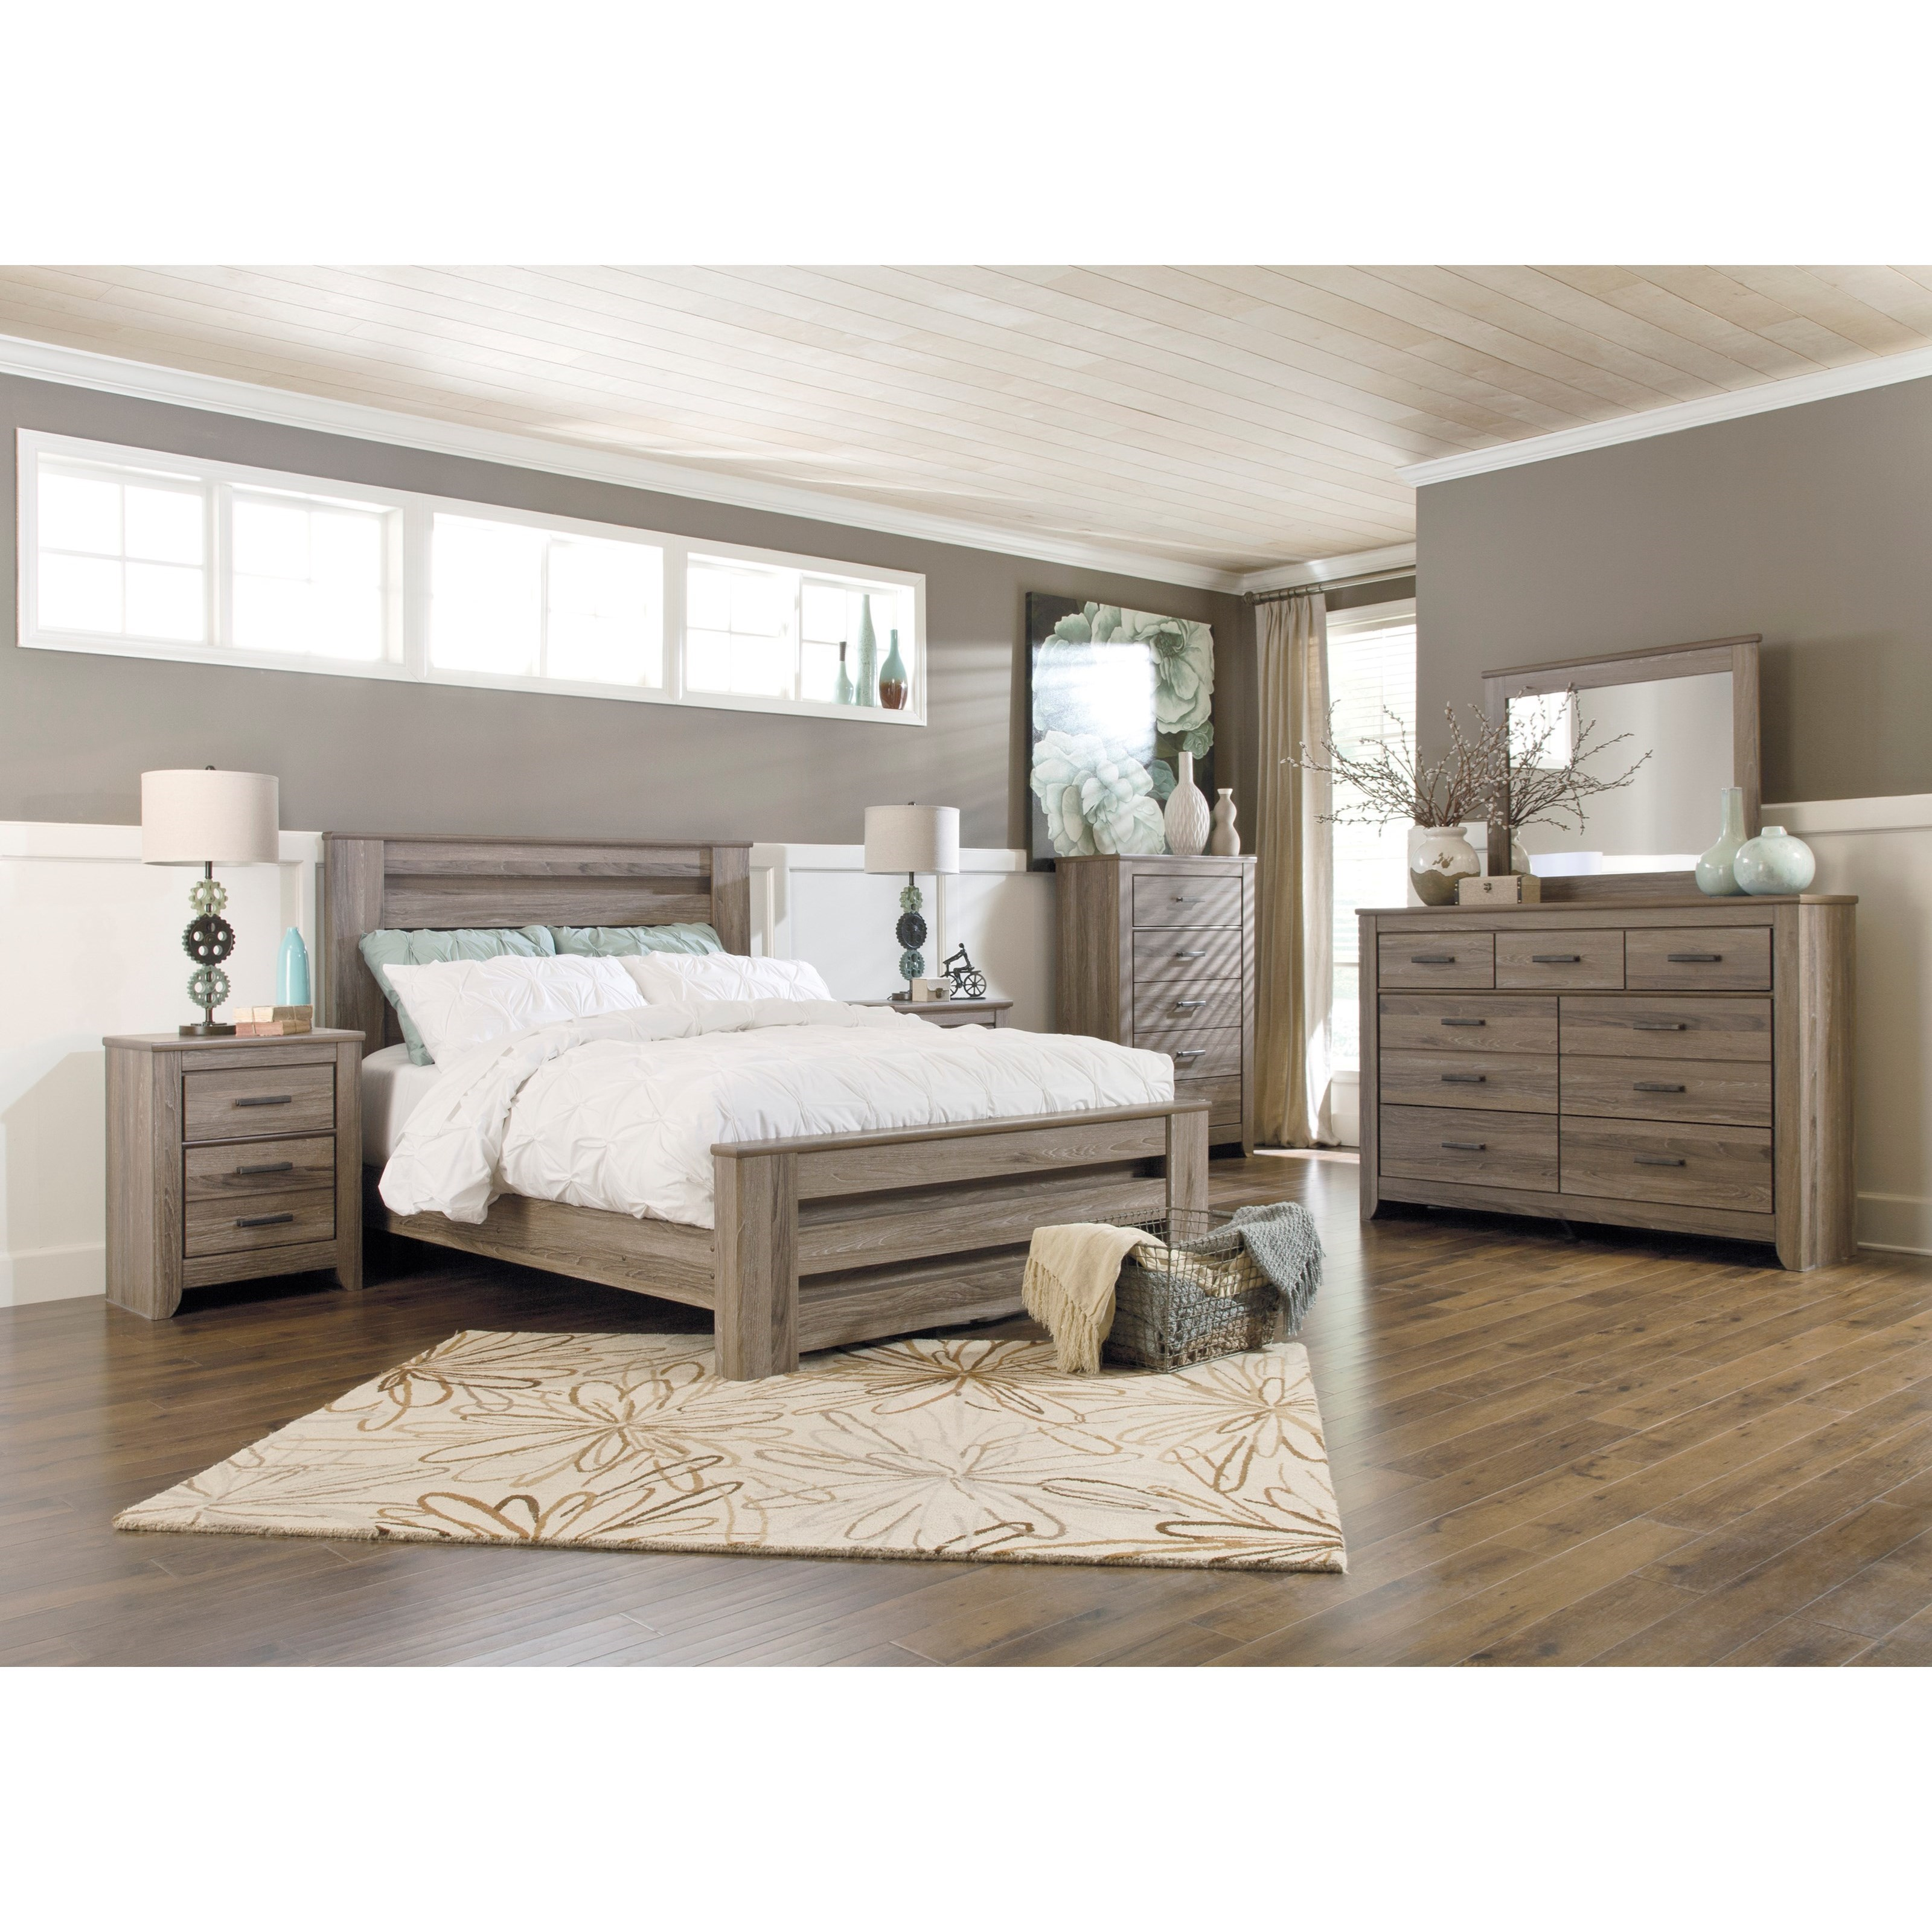 Zelen 6PC Queen Bedroom Group by Signature Design by Ashley at Value City Furniture